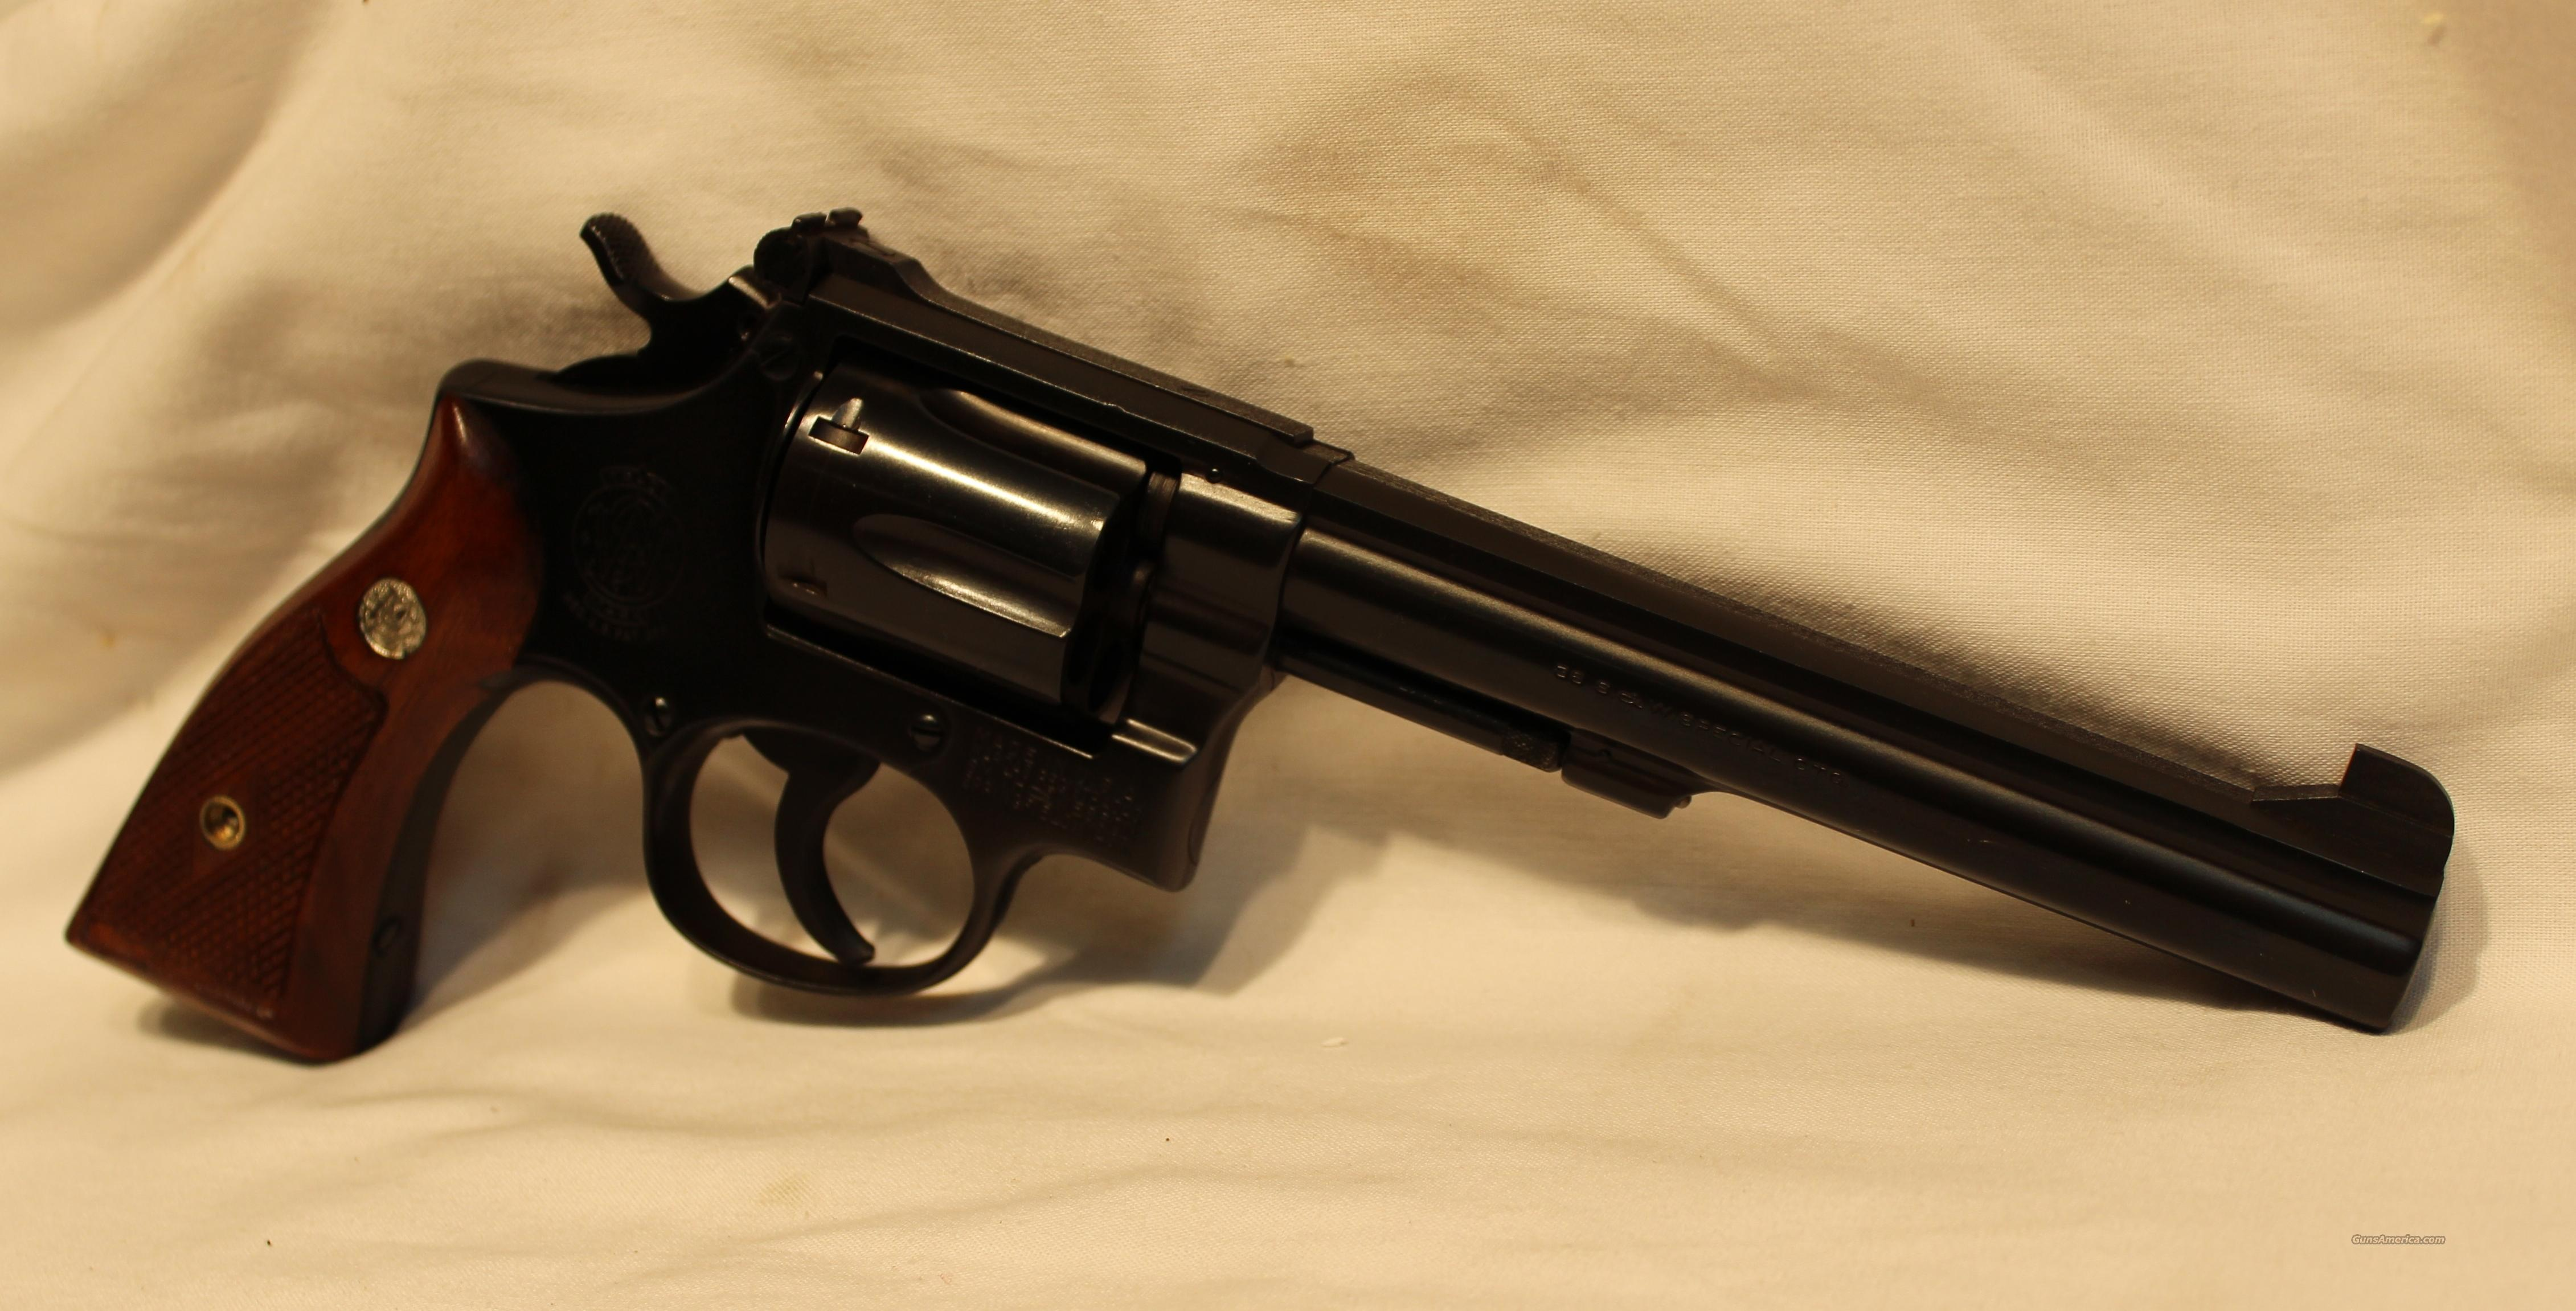 S&W K38 US pre mod 14 Target Masterpiece 38spl  Guns > Pistols > Smith & Wesson Revolvers > Full Frame Revolver